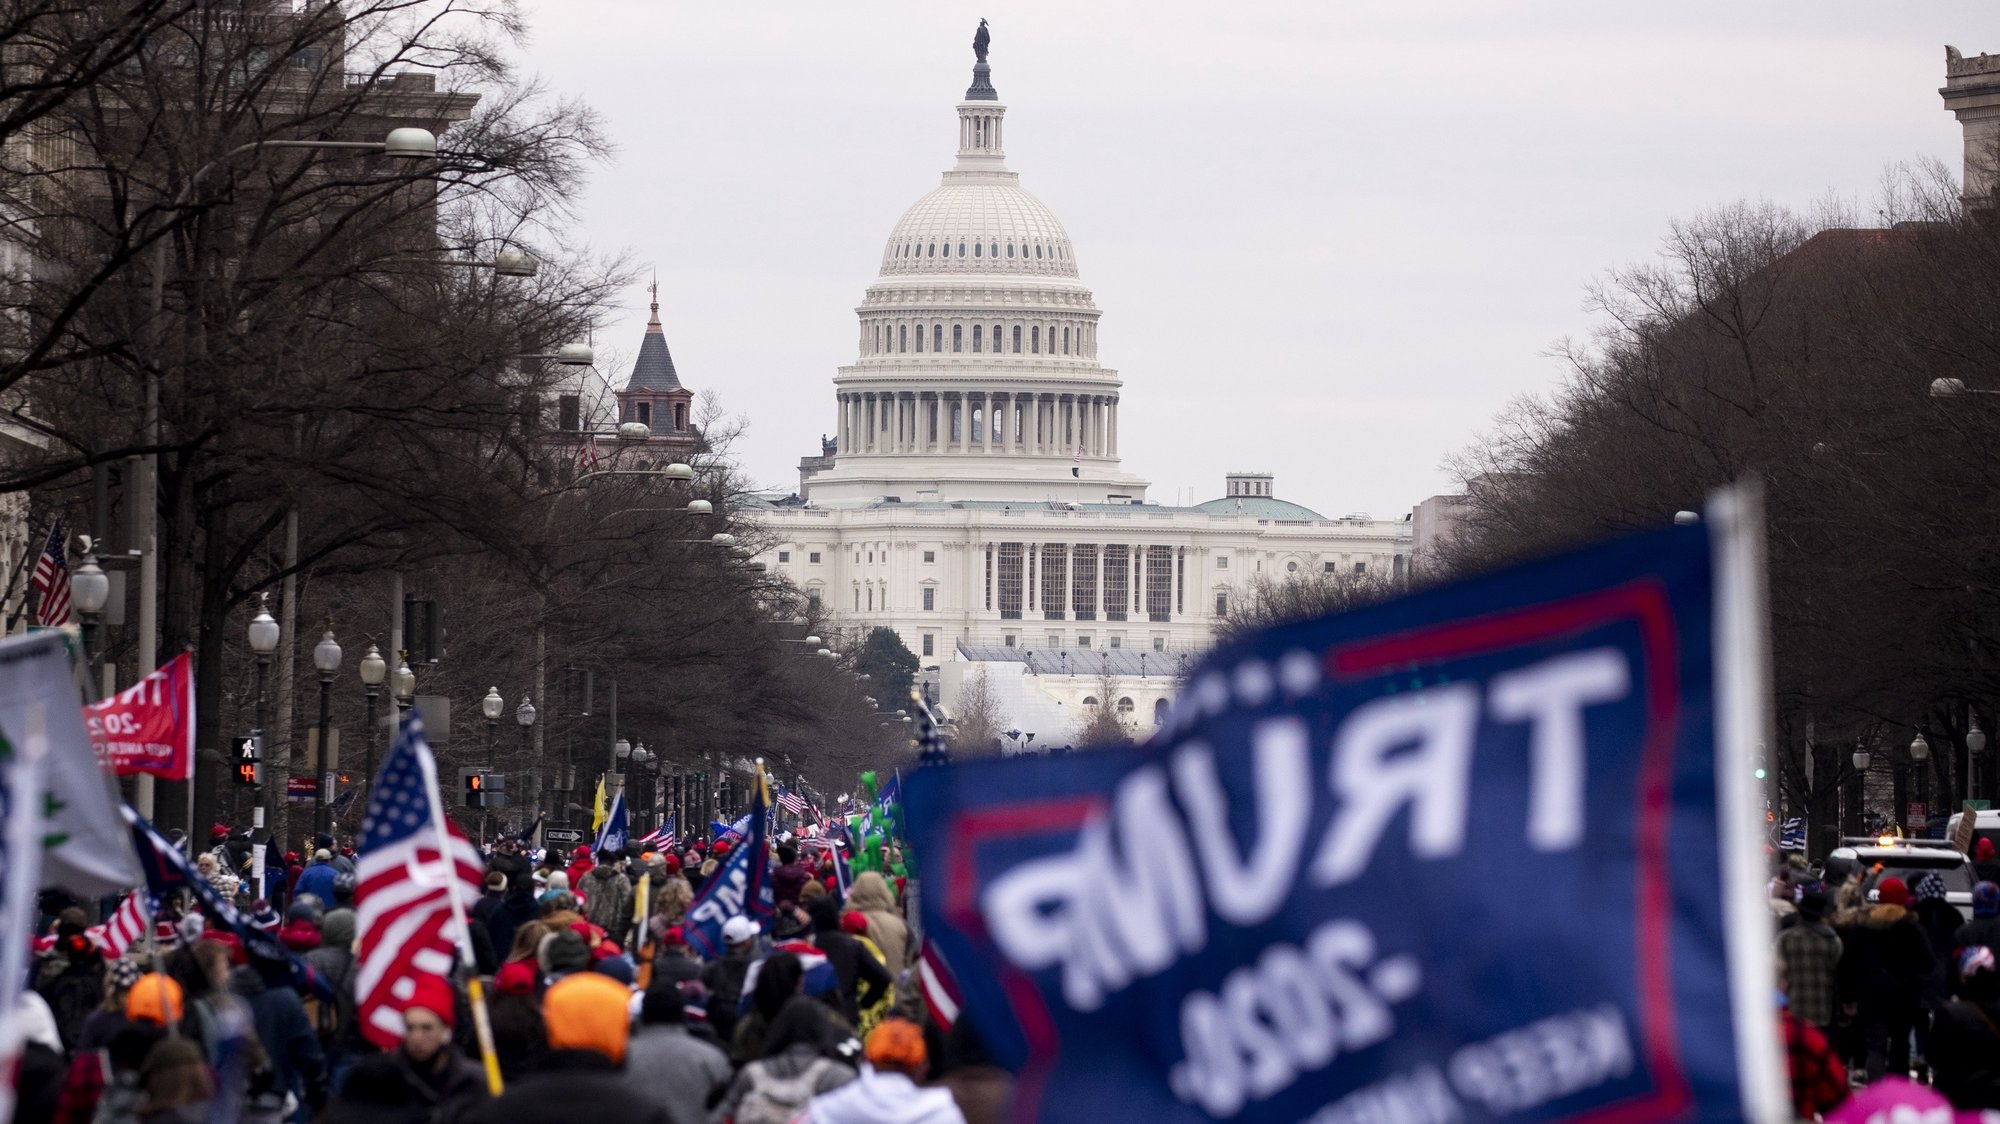 epa08923287 Pro-Trump protesters march down Pennsylvania Avenue to the US Capitol (seen behind) in Washington, DC, USA, 06 January 2021. Right-wing conservative groups are protesting against Congress counting the electoral college votes. Dozens of state and federal judges have shot down challenges to the 2020 presidential election, finding the accusations of fraud to be without merit.  EPA/MICHAEL REYNOLDS